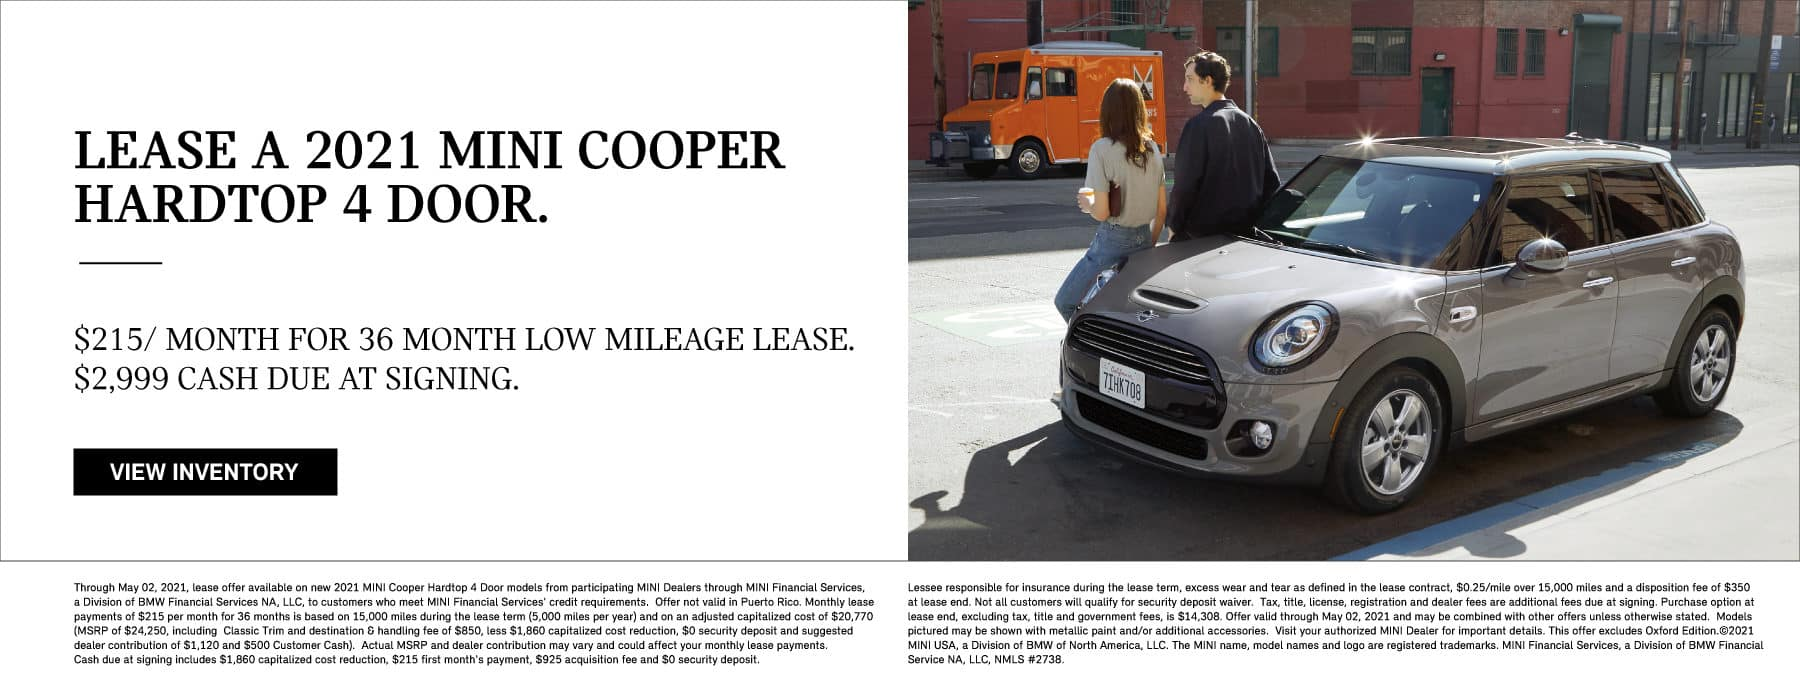 1. Low mileage-lease offer: 2021 MINI Cooper Hardtop 4 Door. Starting at $215/month for 36 month low-mileage lease. $2,999 cash due at signing.